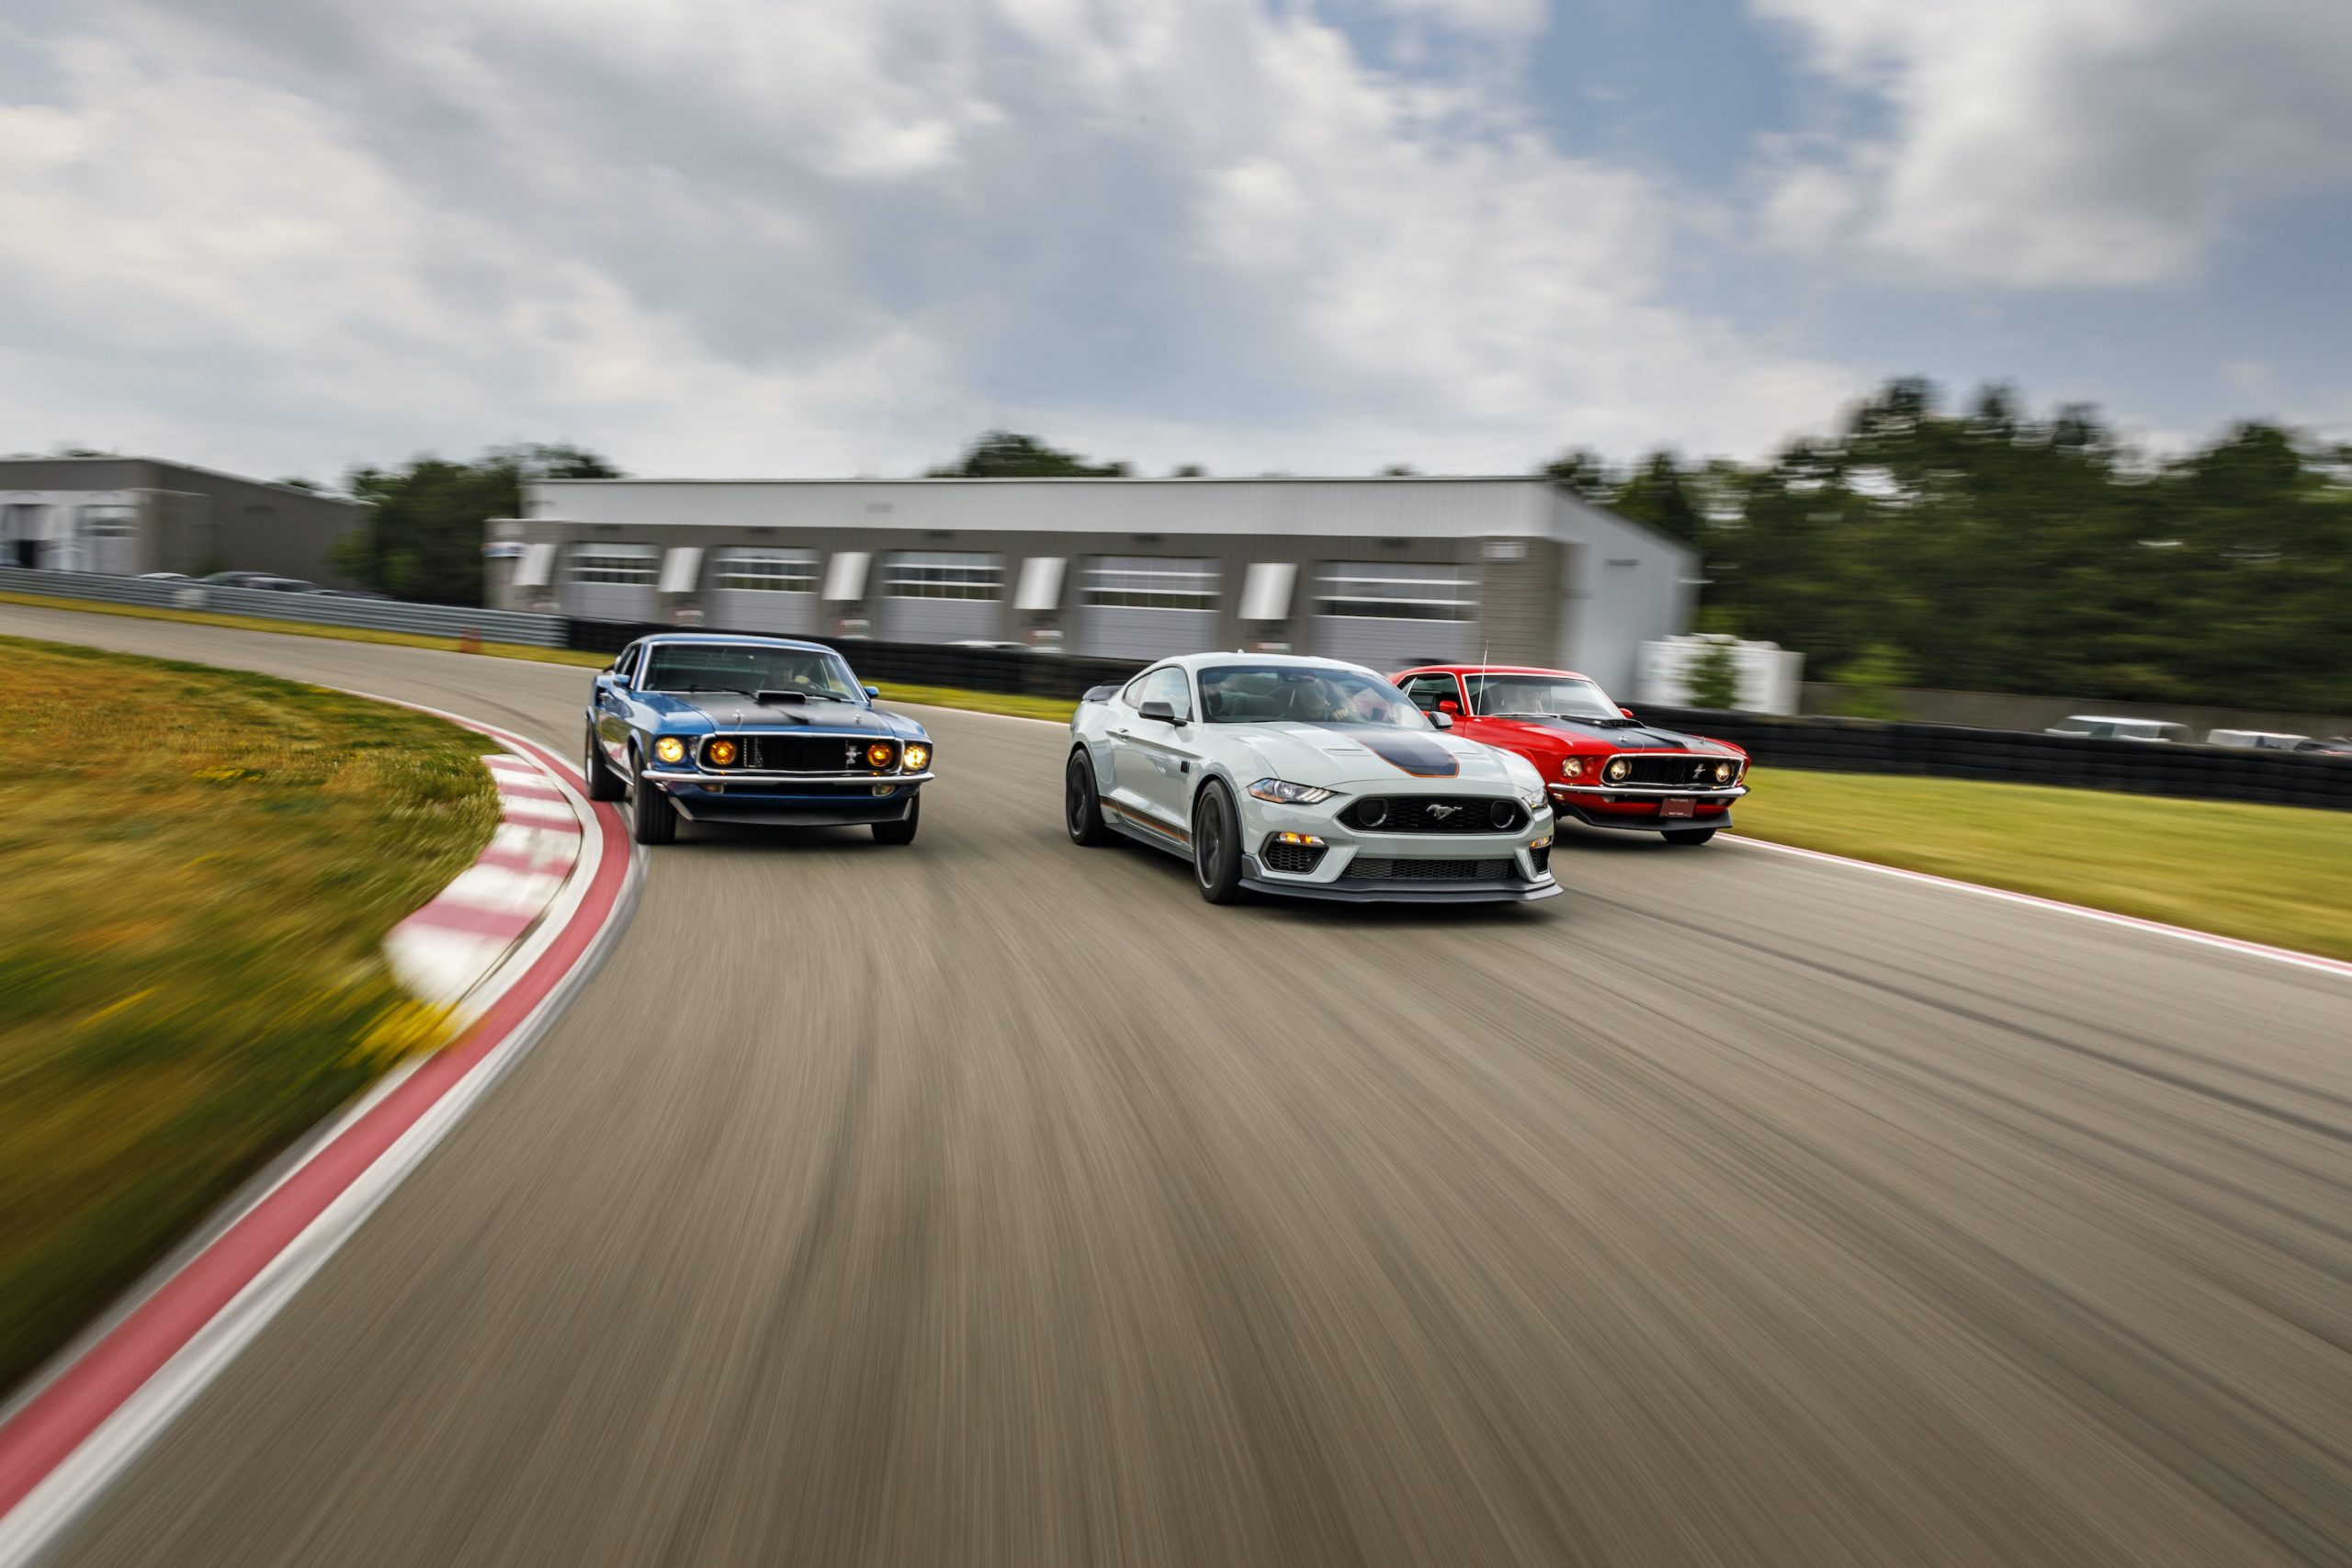 2021 Ford Mustang Mach 1 Generation Cars action